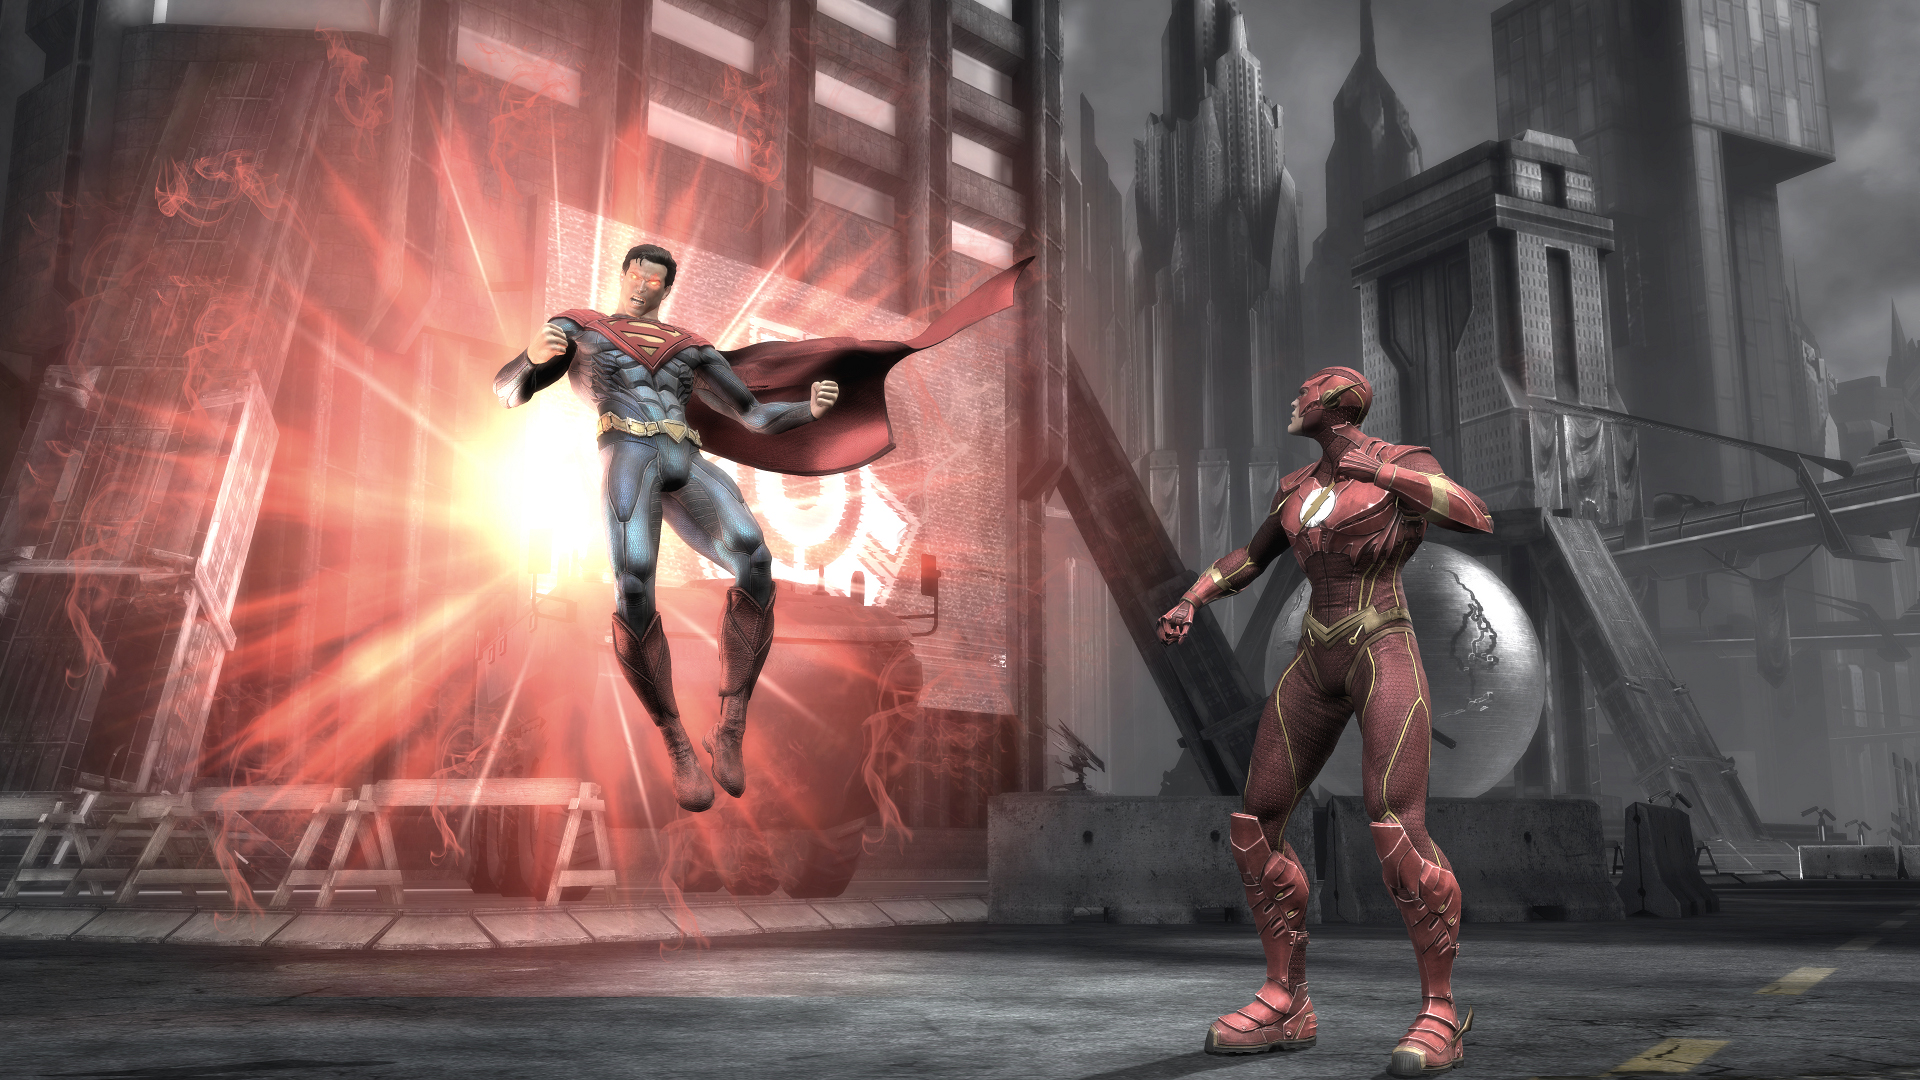 Doomsday estará disponible en Injustice: Gods Among Us [Video]